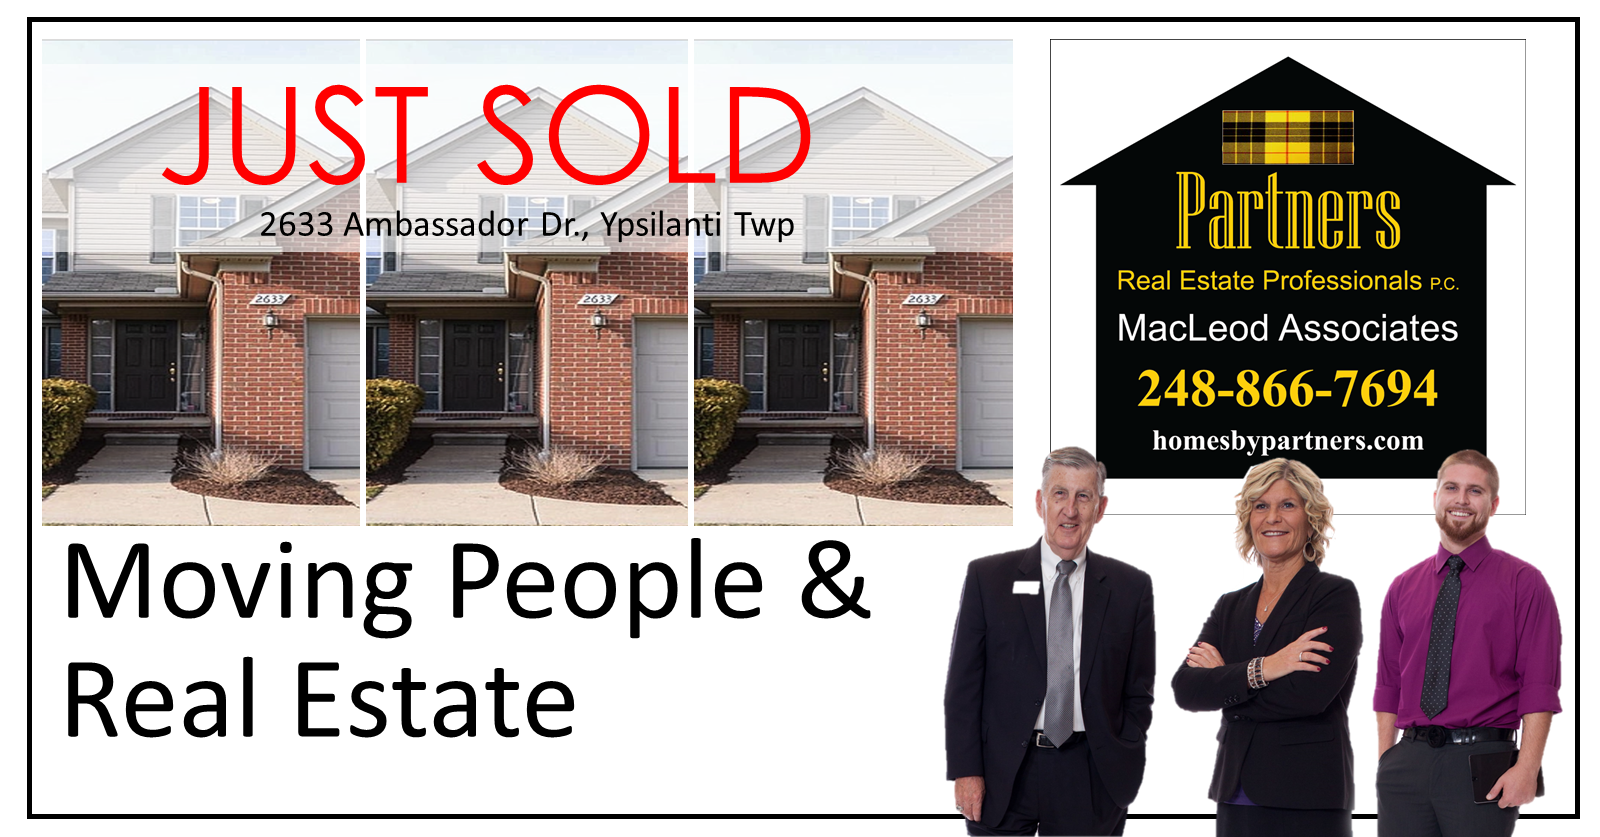 ypsilanti home sold by MacLeod Associates